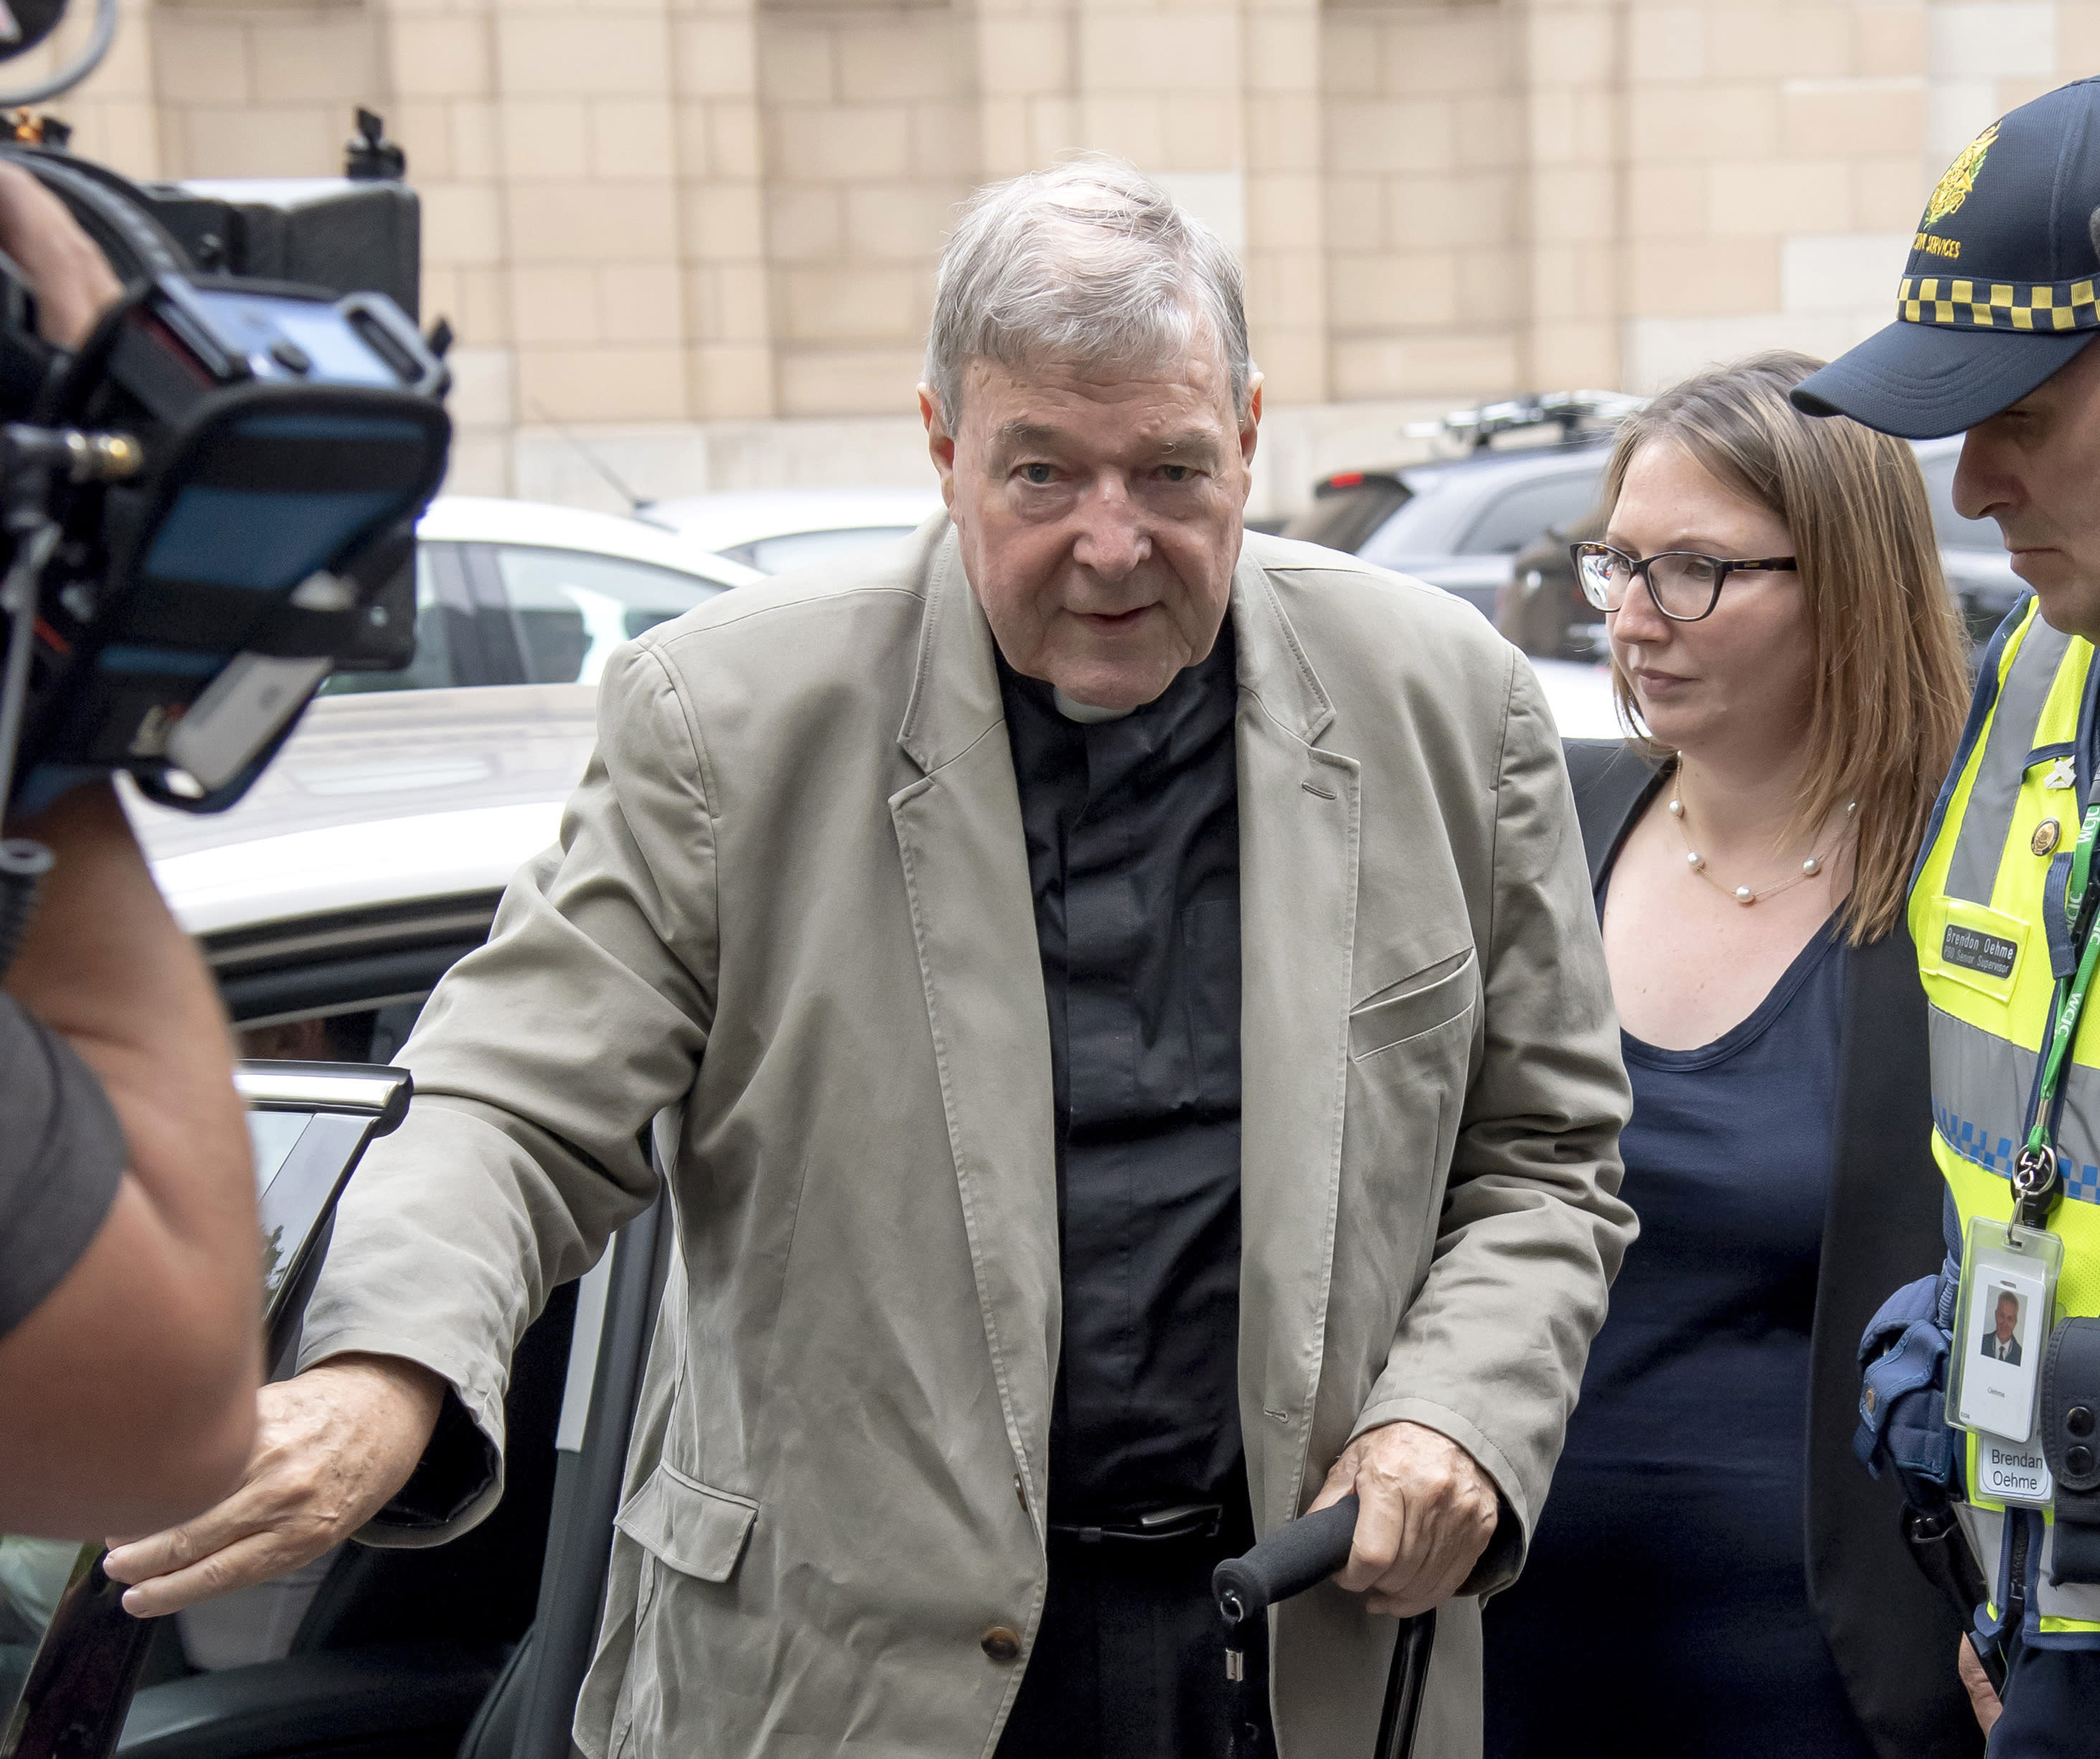 FILE - In this Feb. 26, 2019, file photo, Cardinal George Pell arrives at the County Court in Melbourne, Australia. Pell, Pope Francis' former finance minister, will soon return to the Vatican during an extraordinary economic scandal for the first time since he was cleared of child abuse allegations in Australia five months ago, a newspaper has reported, Monday, Sept. 28, 2020. (AP Photo/Andy Brownbill, File)